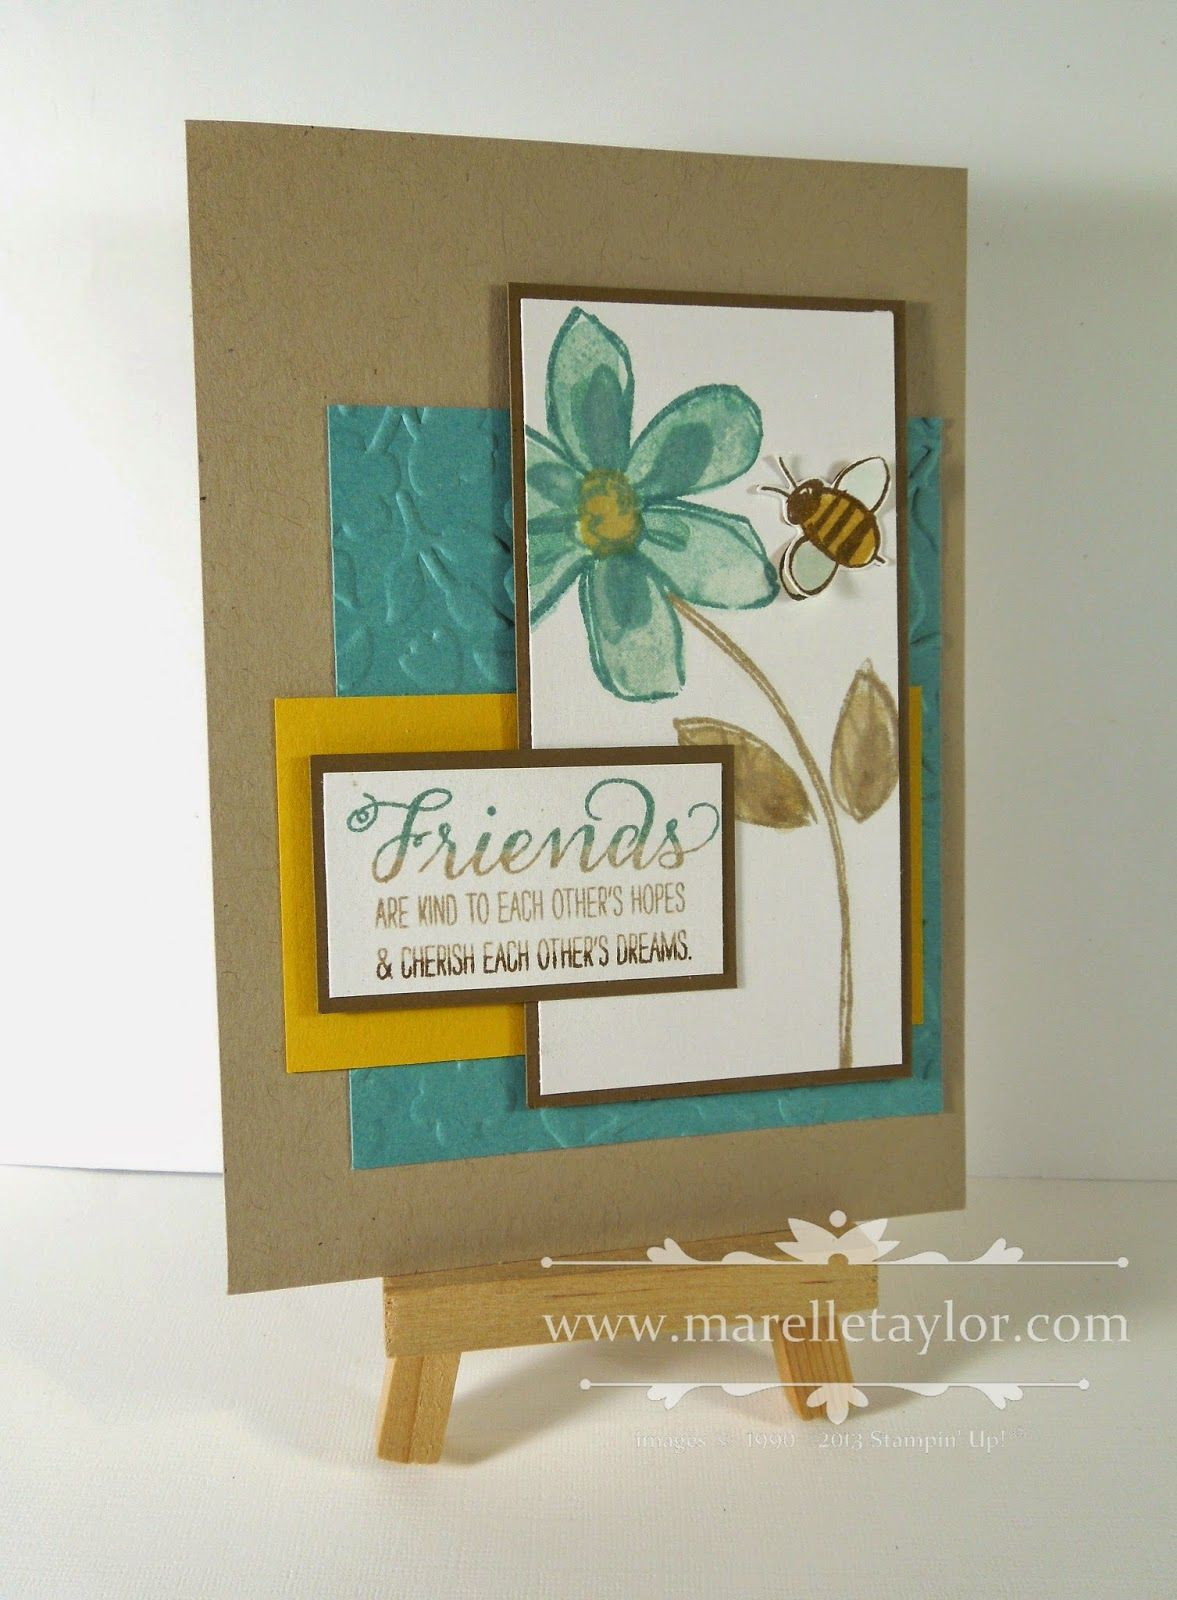 Marelle taylor stampin up demonstrator sydney australia hawaii marelle taylor stampin up demonstrator sydney australia hawaii grand vacation swap card kristyandbryce Image collections